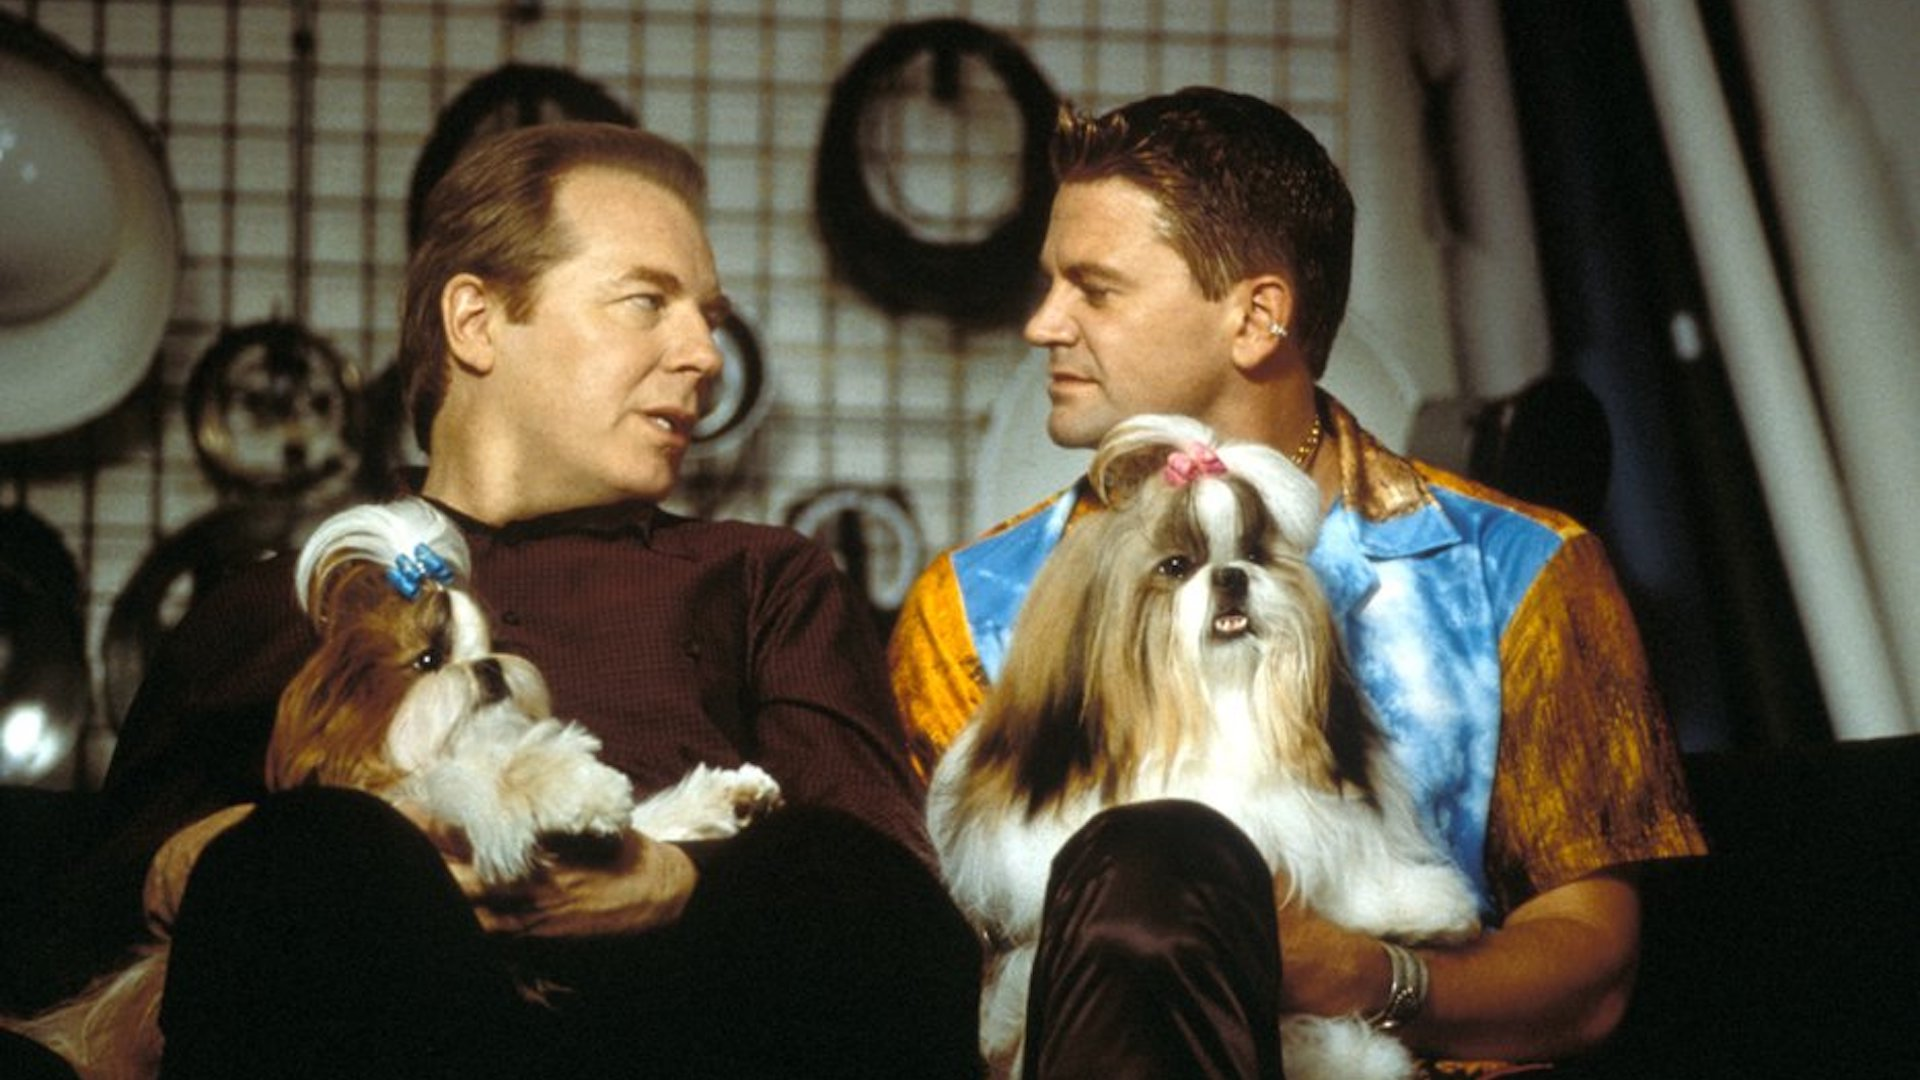 Michael McKean (Left) and John Michael Higgins (Right) in Best in Show (2000).